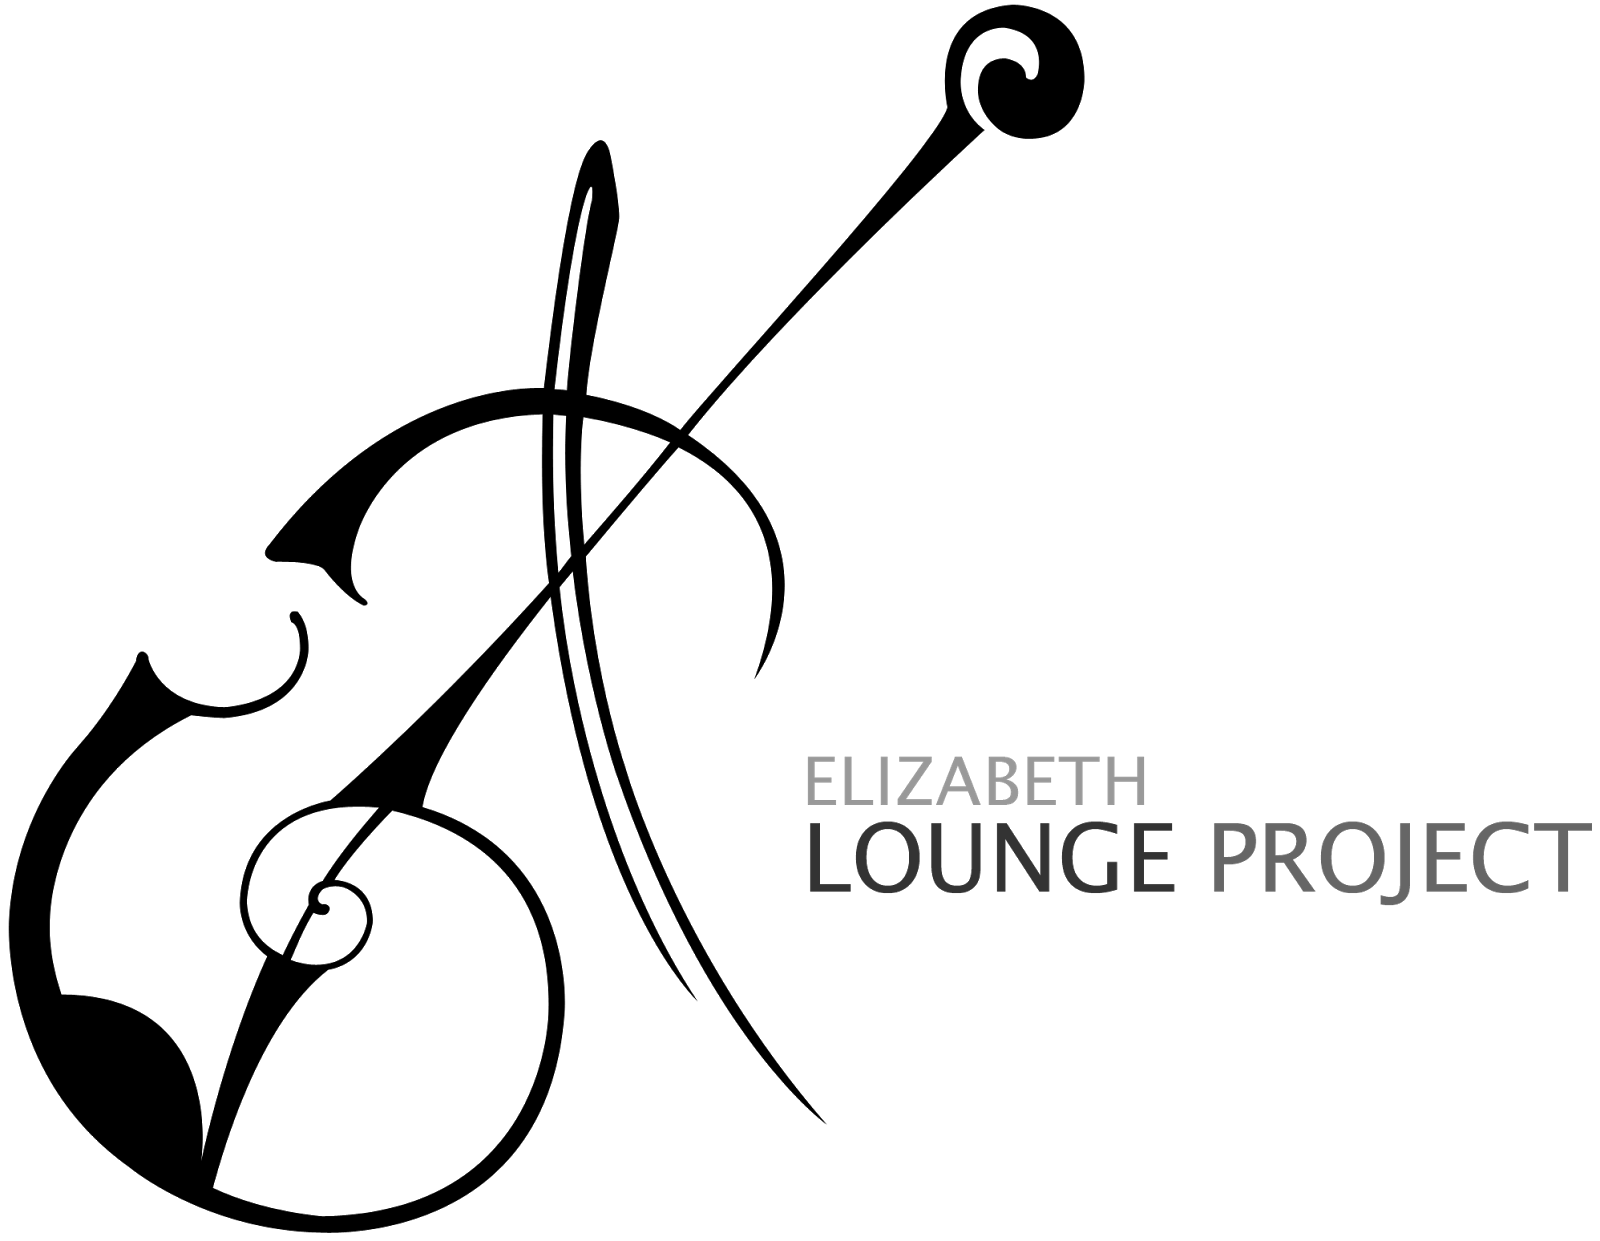 Elizabeth Lounge Project